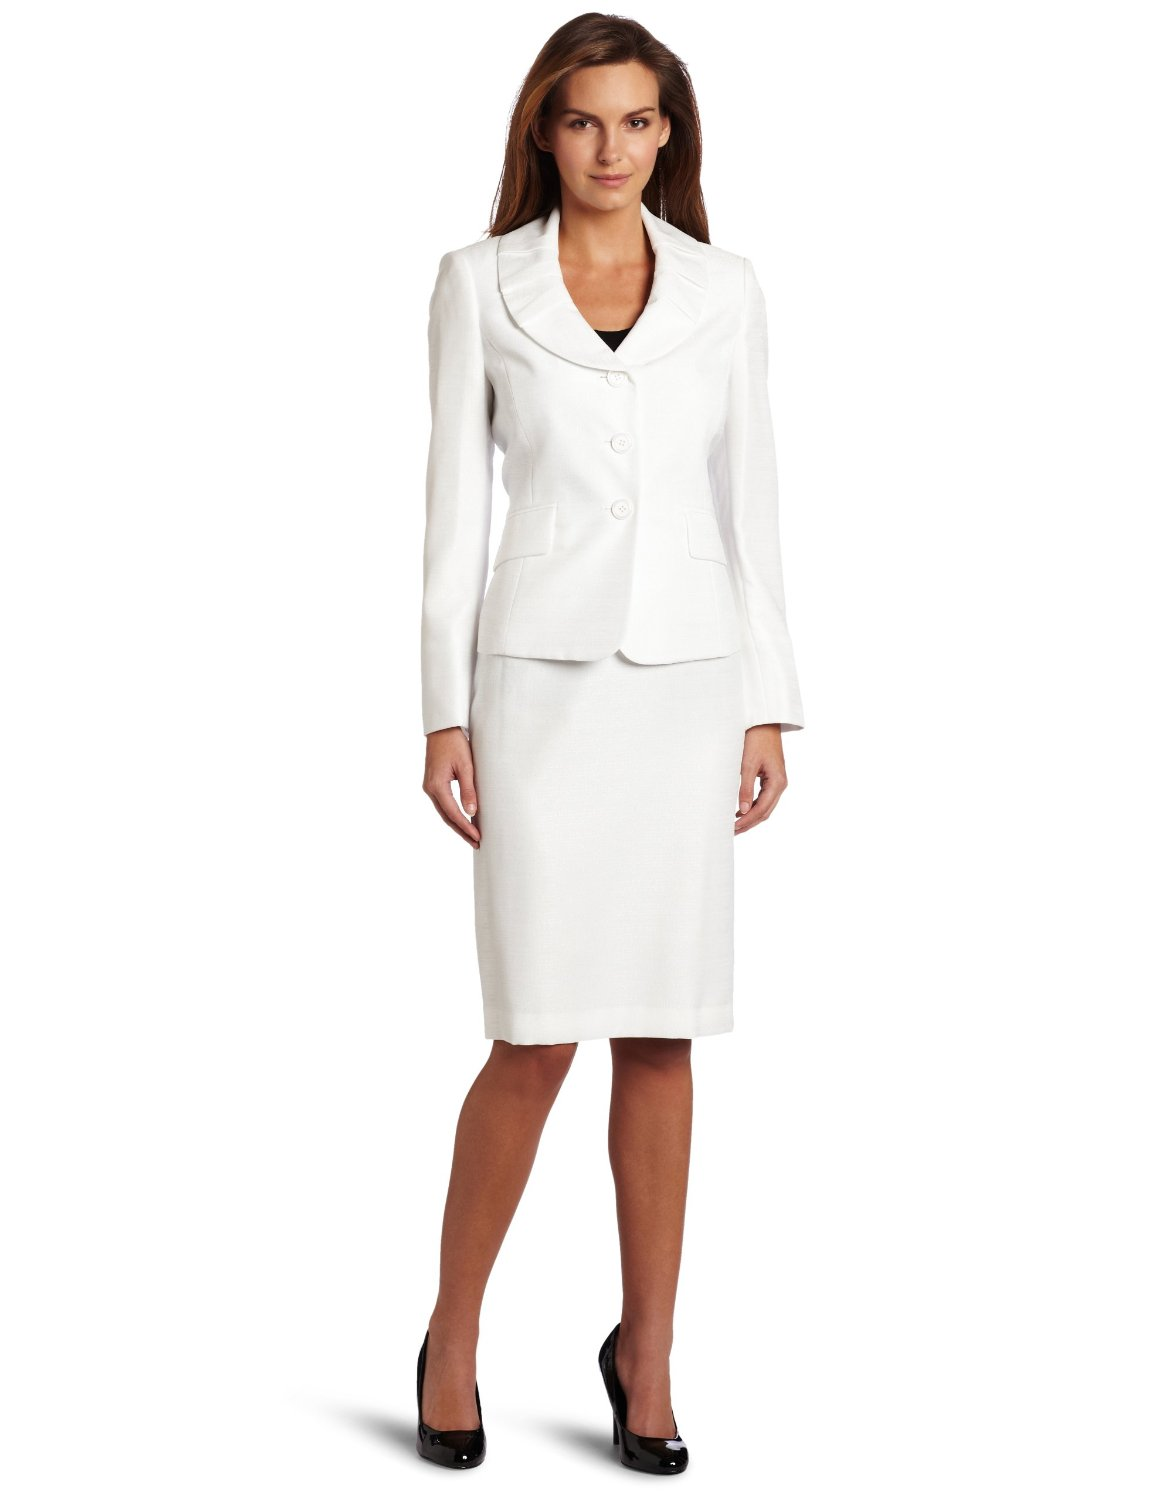 Wonderful Discount Plus Size Dresses Tips For Shopping Plus Size Business Suits Online